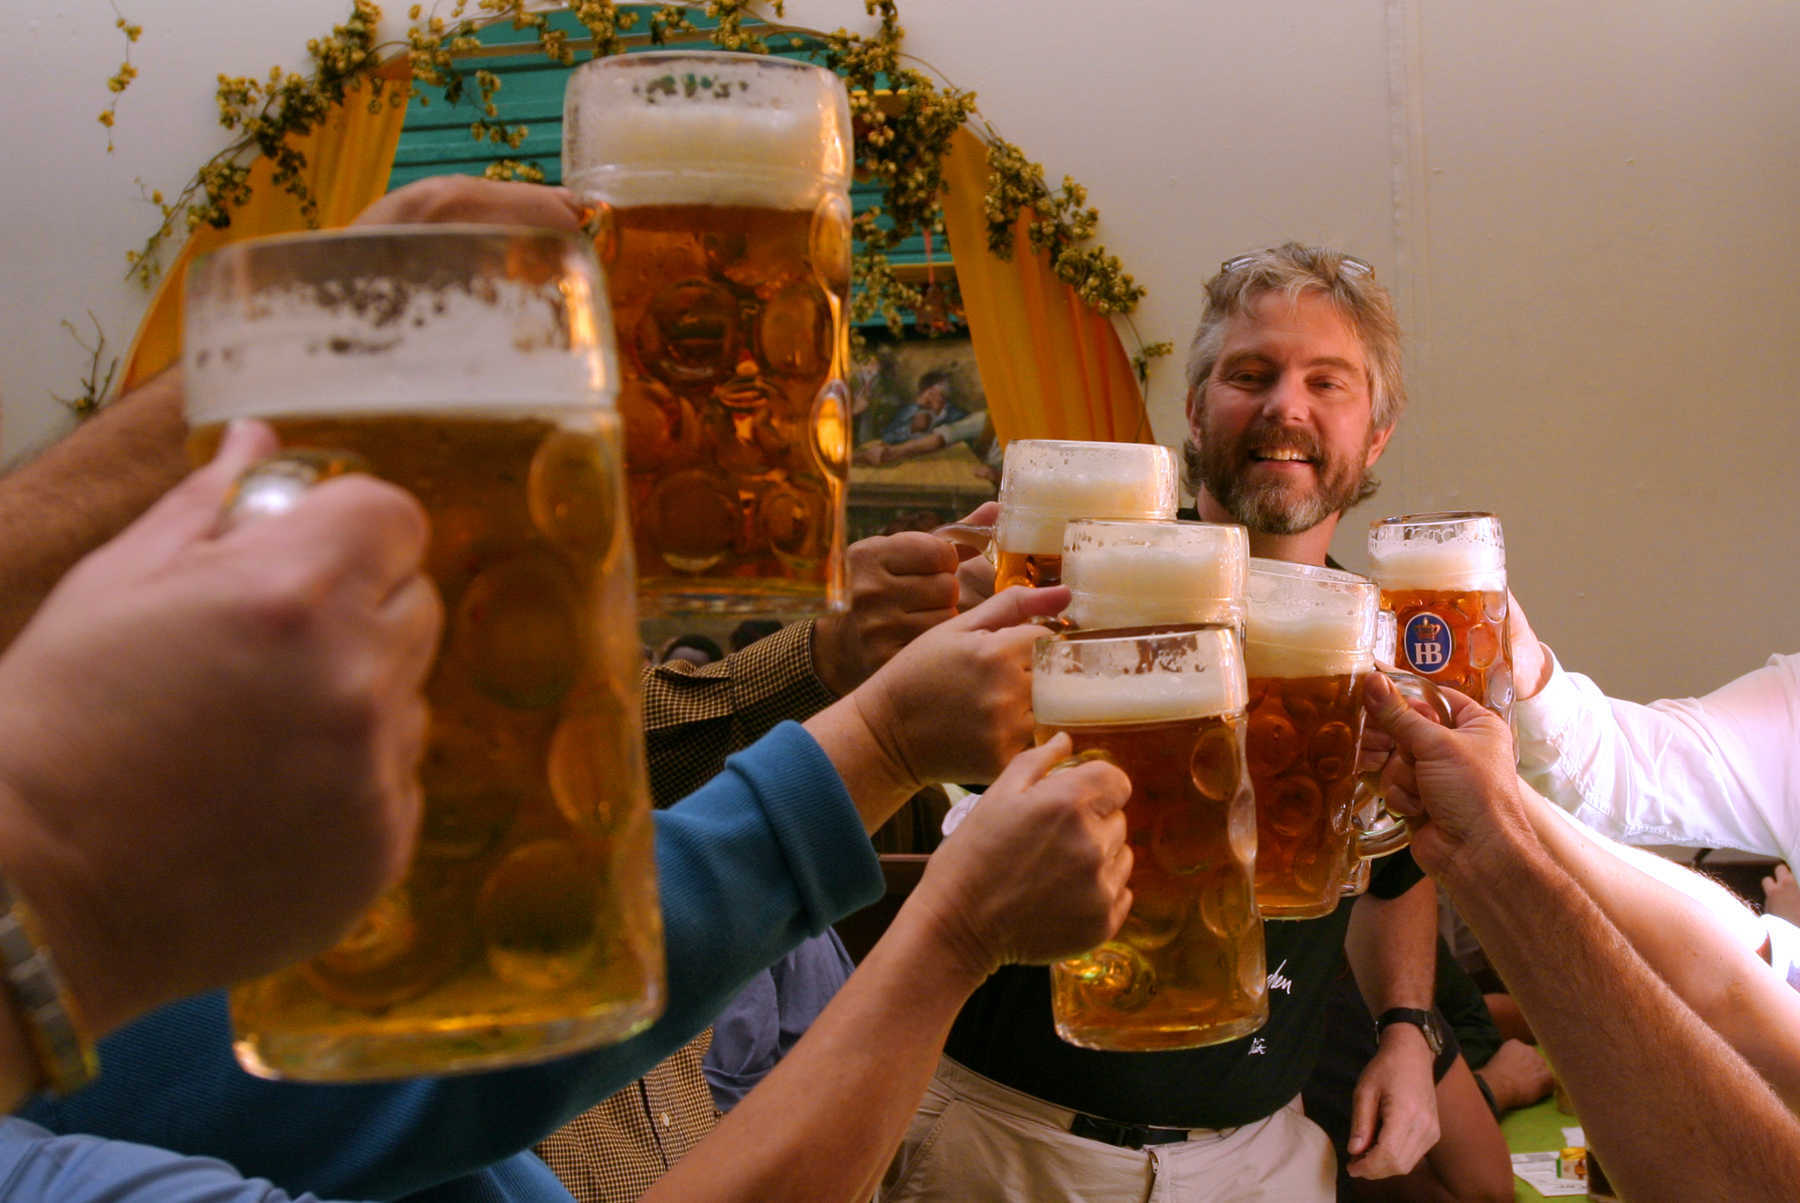 Beer Mugs Toasting, Oktoberfest, Munich, Germany